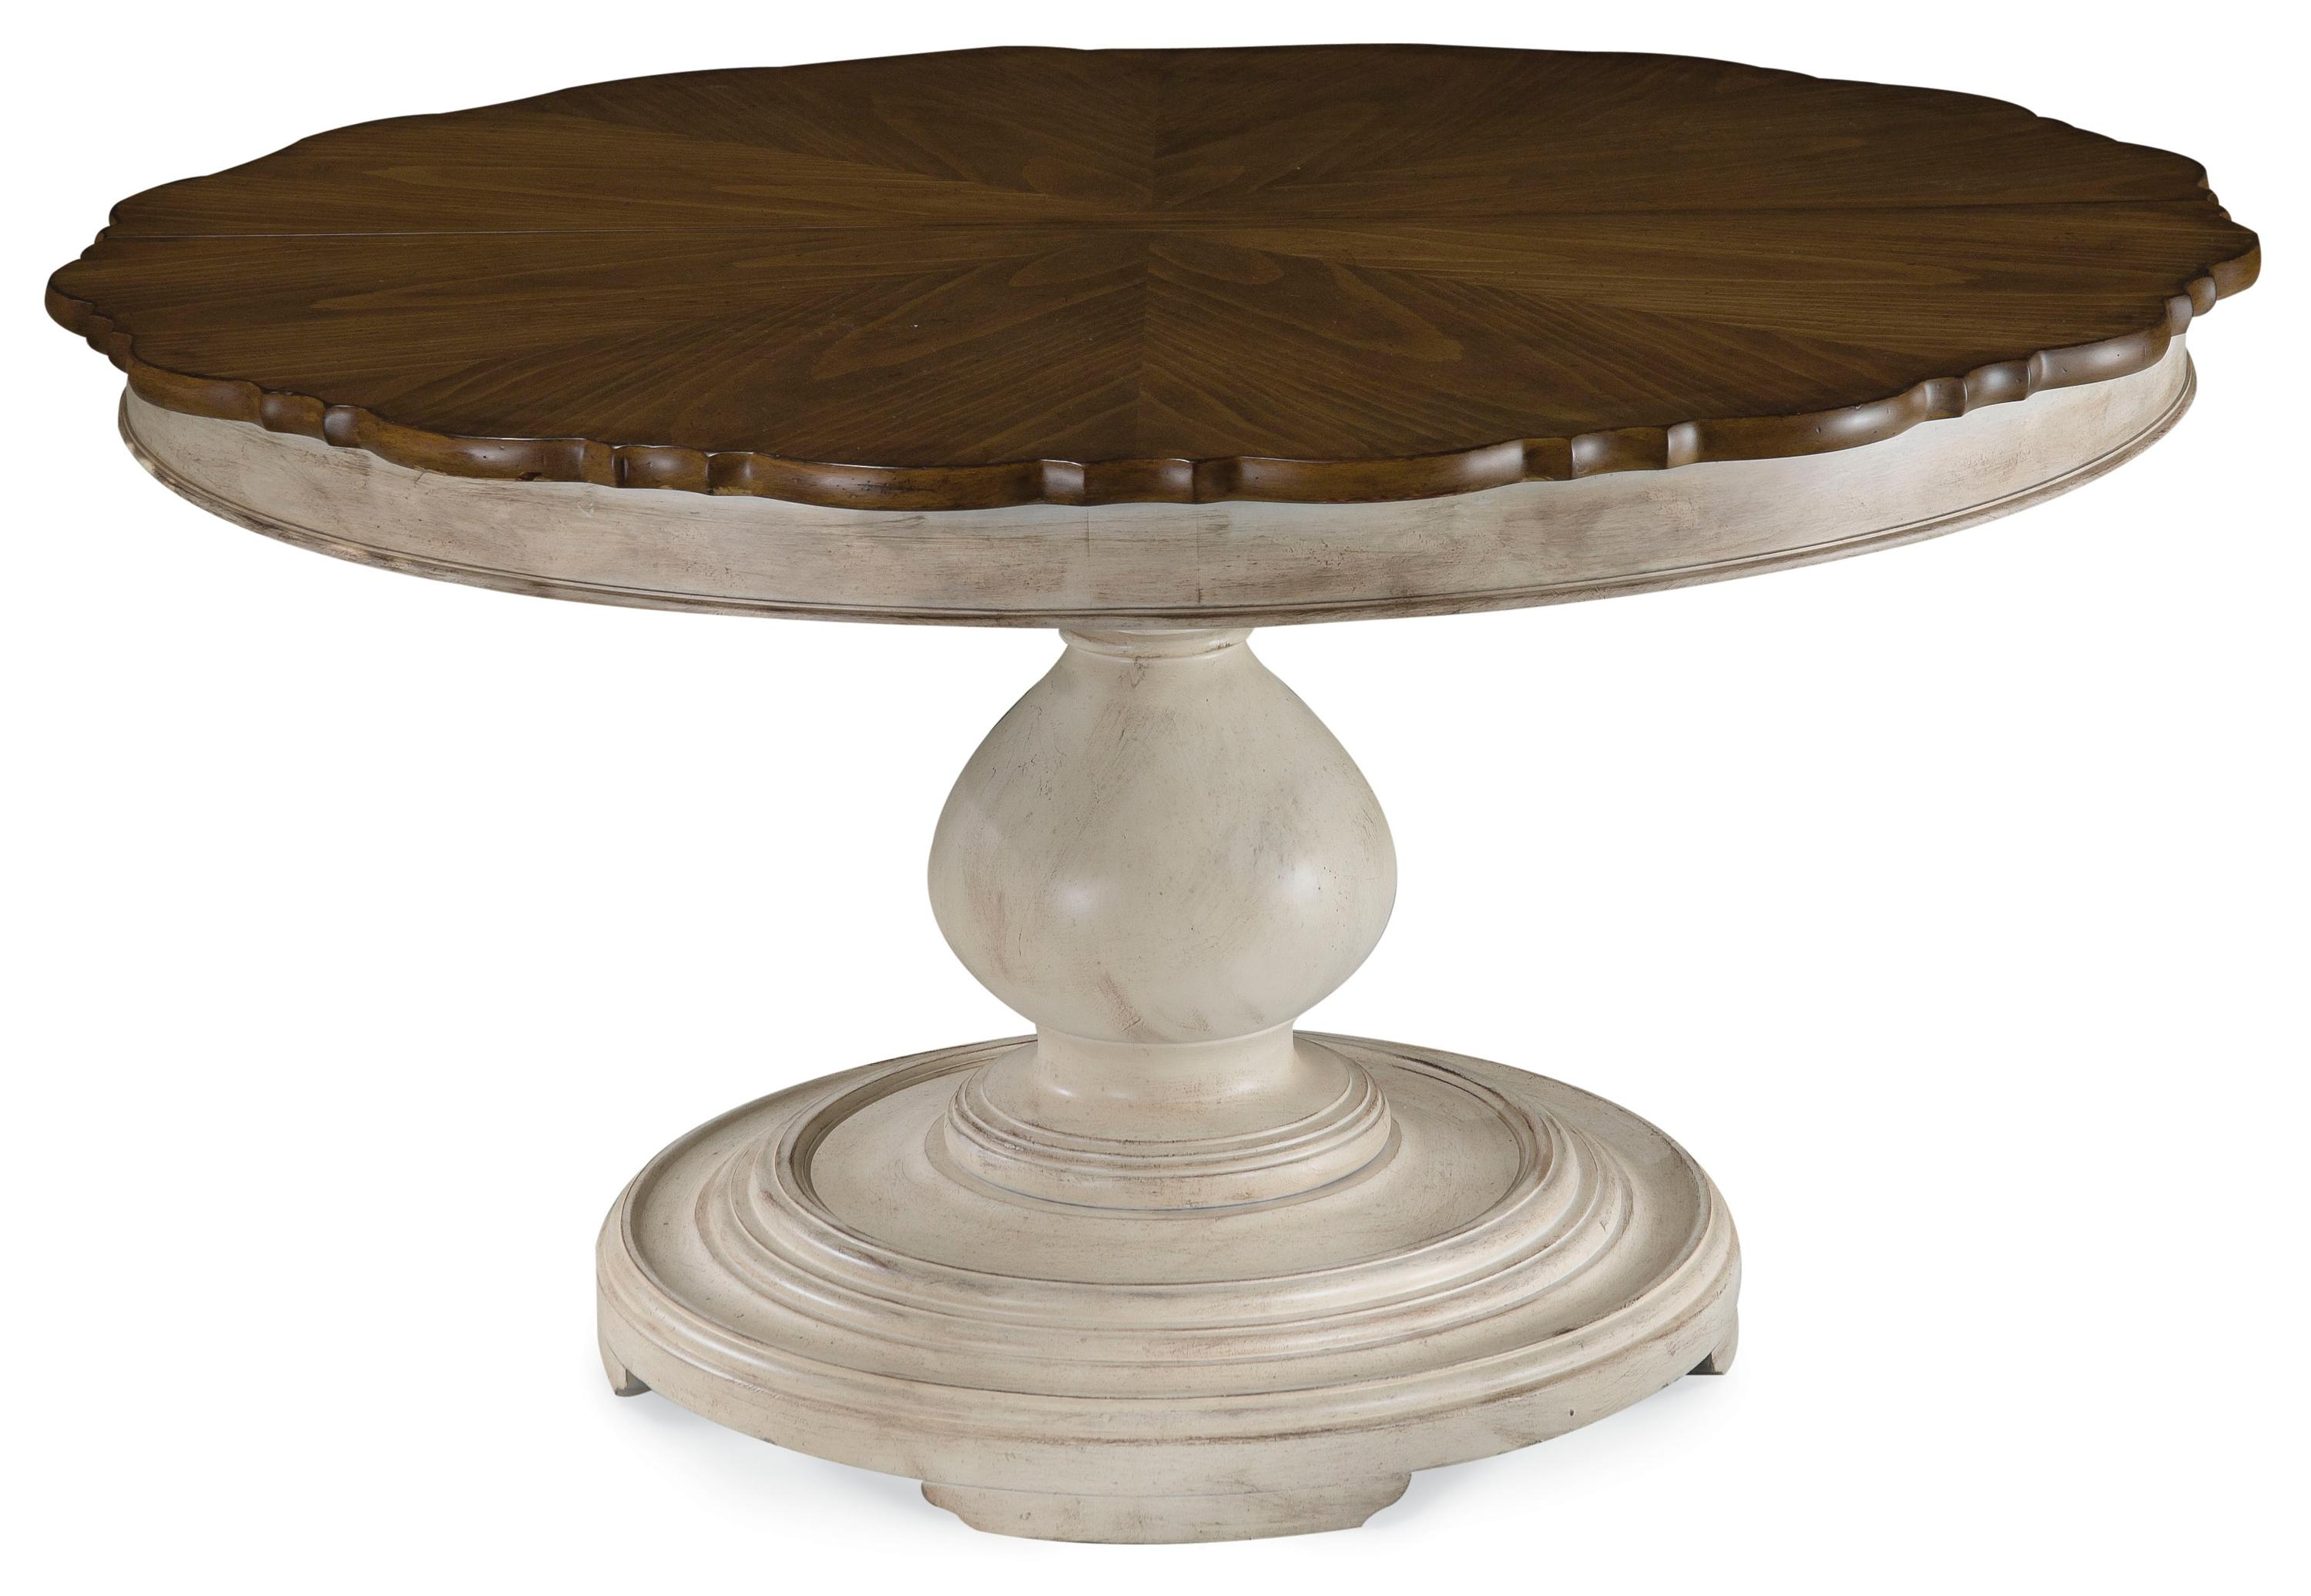 Belfort Signature Farrington Round Dining Table Top and Base - Item Number: 189225-2617BS+2624TP